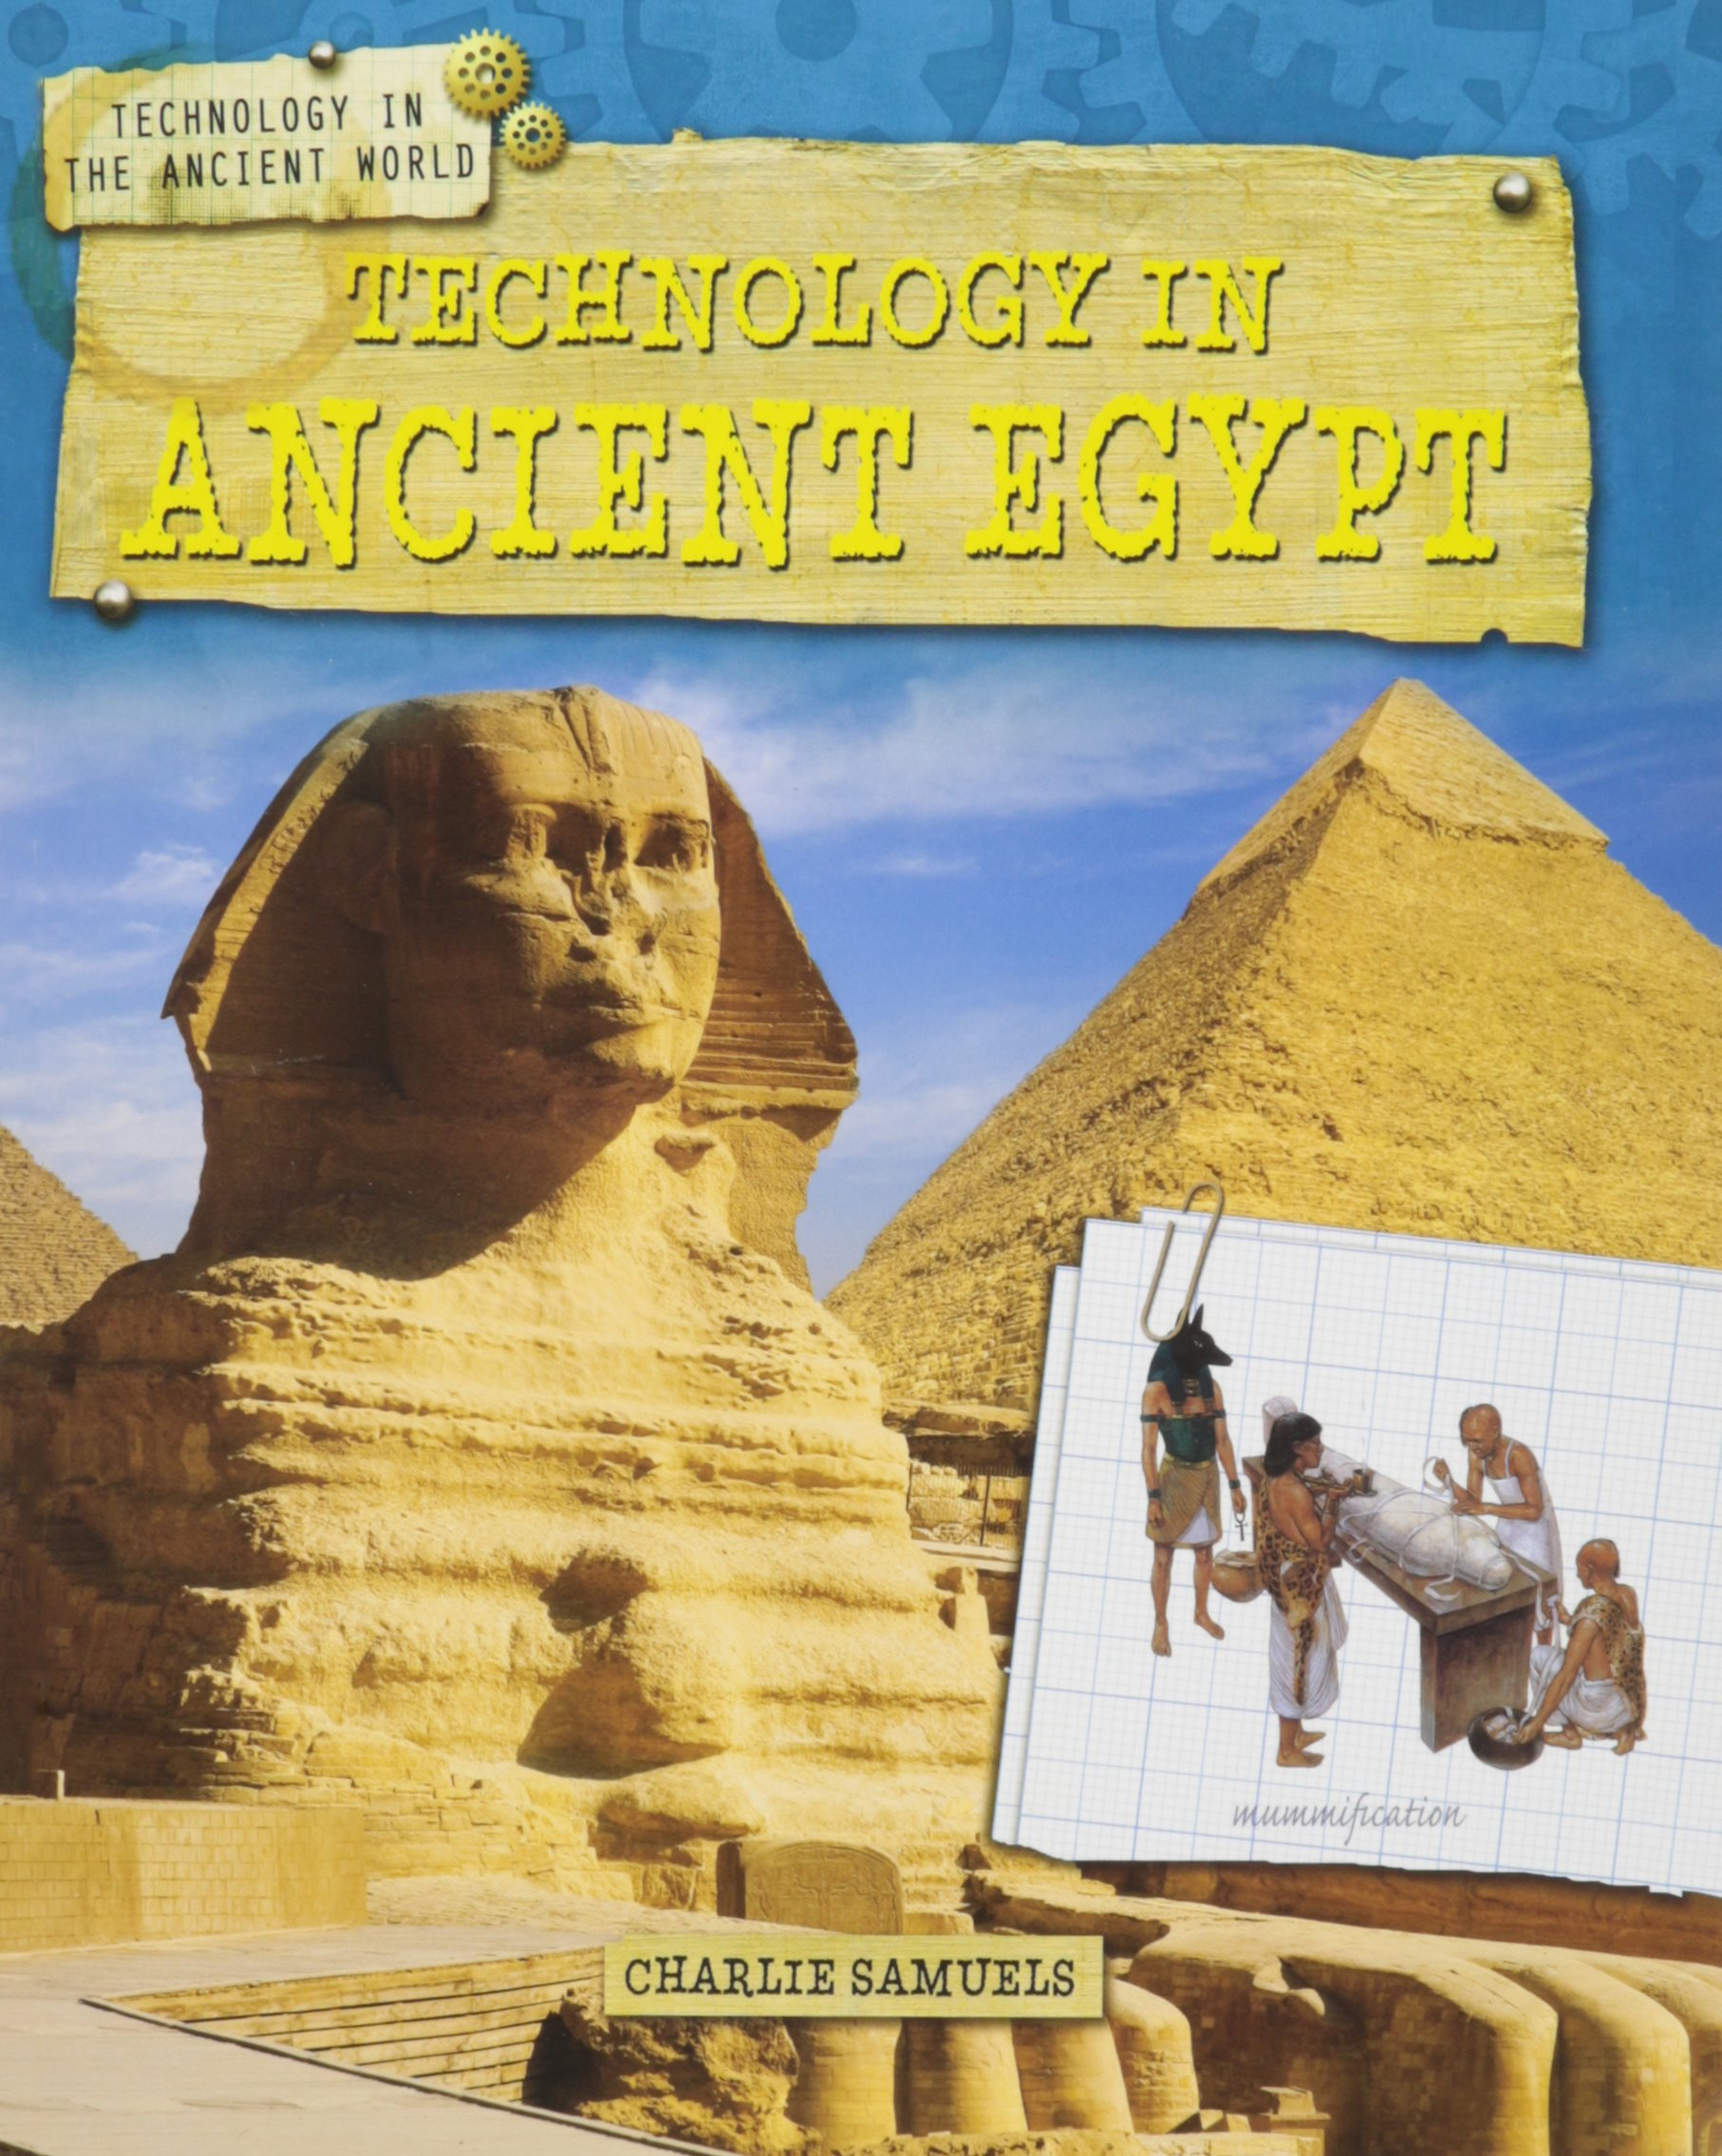 Technology in Ancient Egypt (Technology in the Ancient World) by Gareth Stevens Pub Learning library (Image #1)